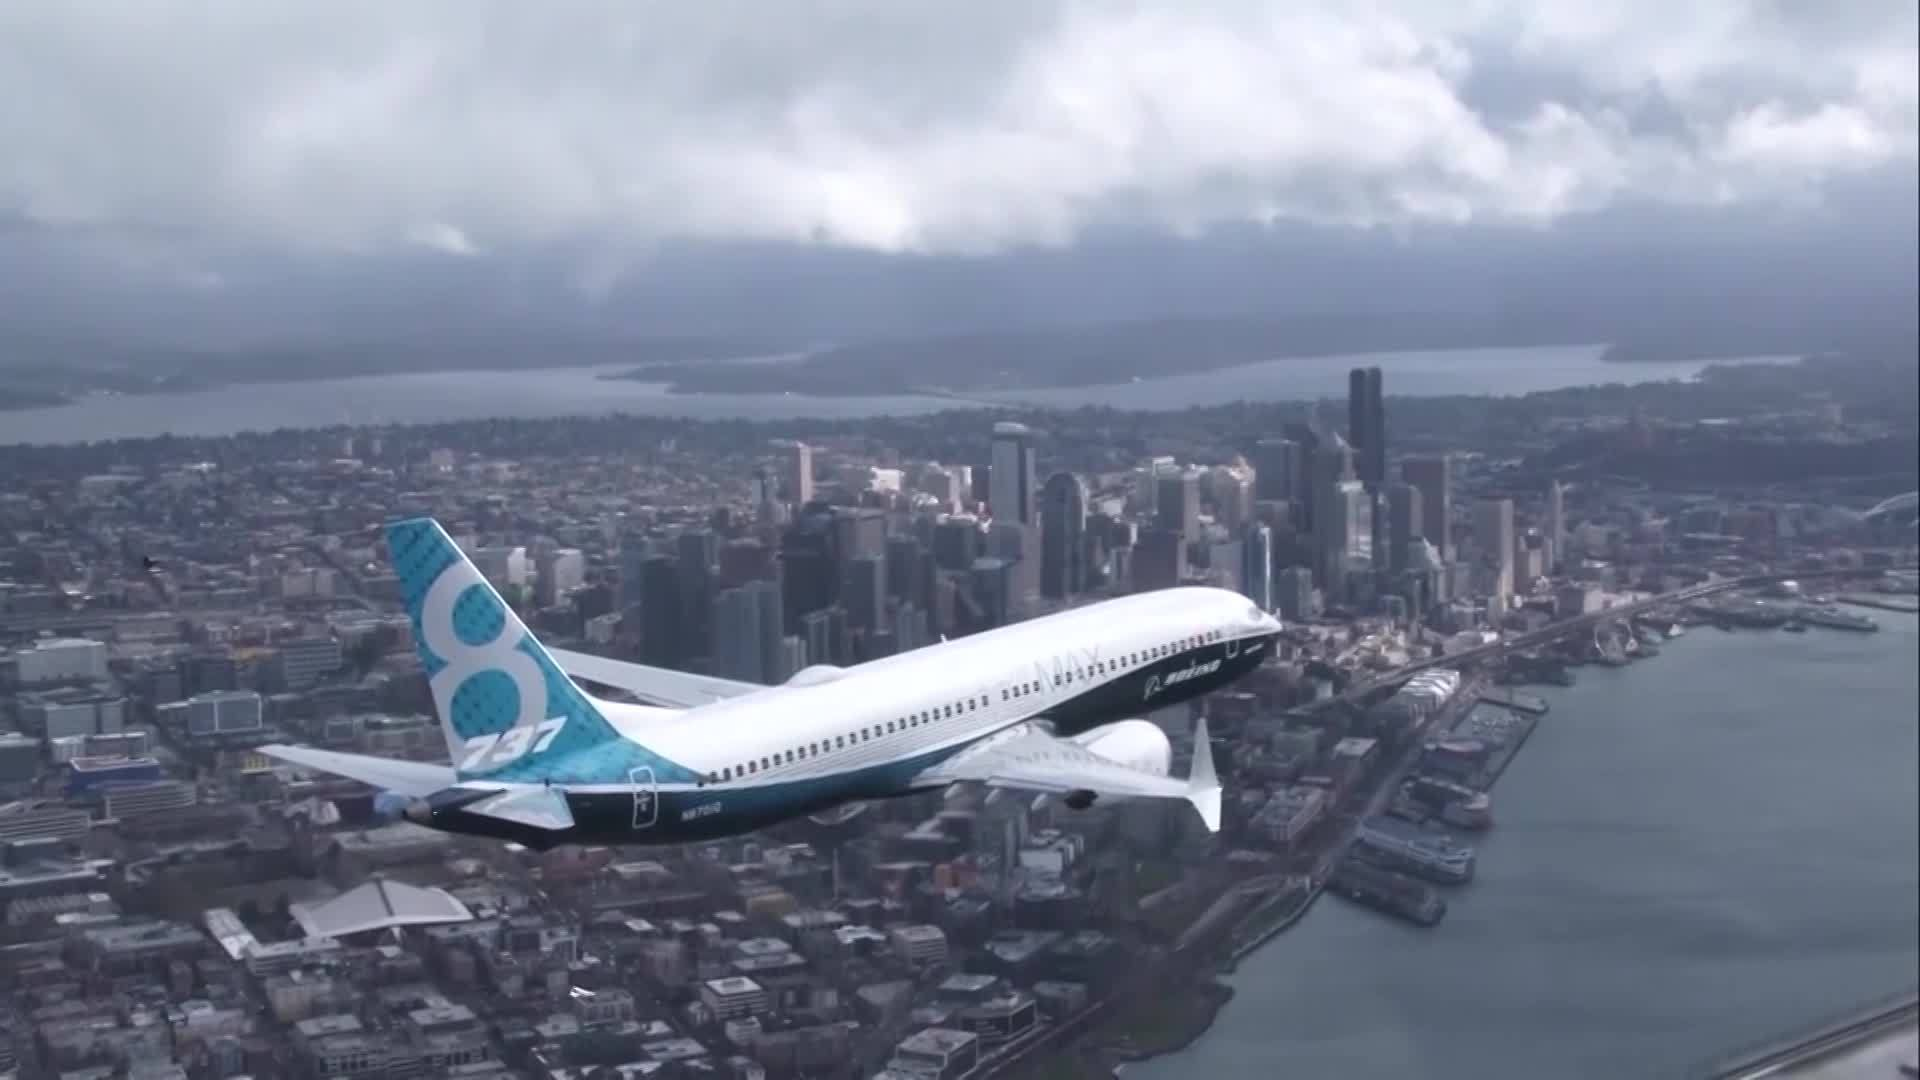 Boeing_s_CEO_faces_questions_over_737_Ma_3_20190429214850-842137445